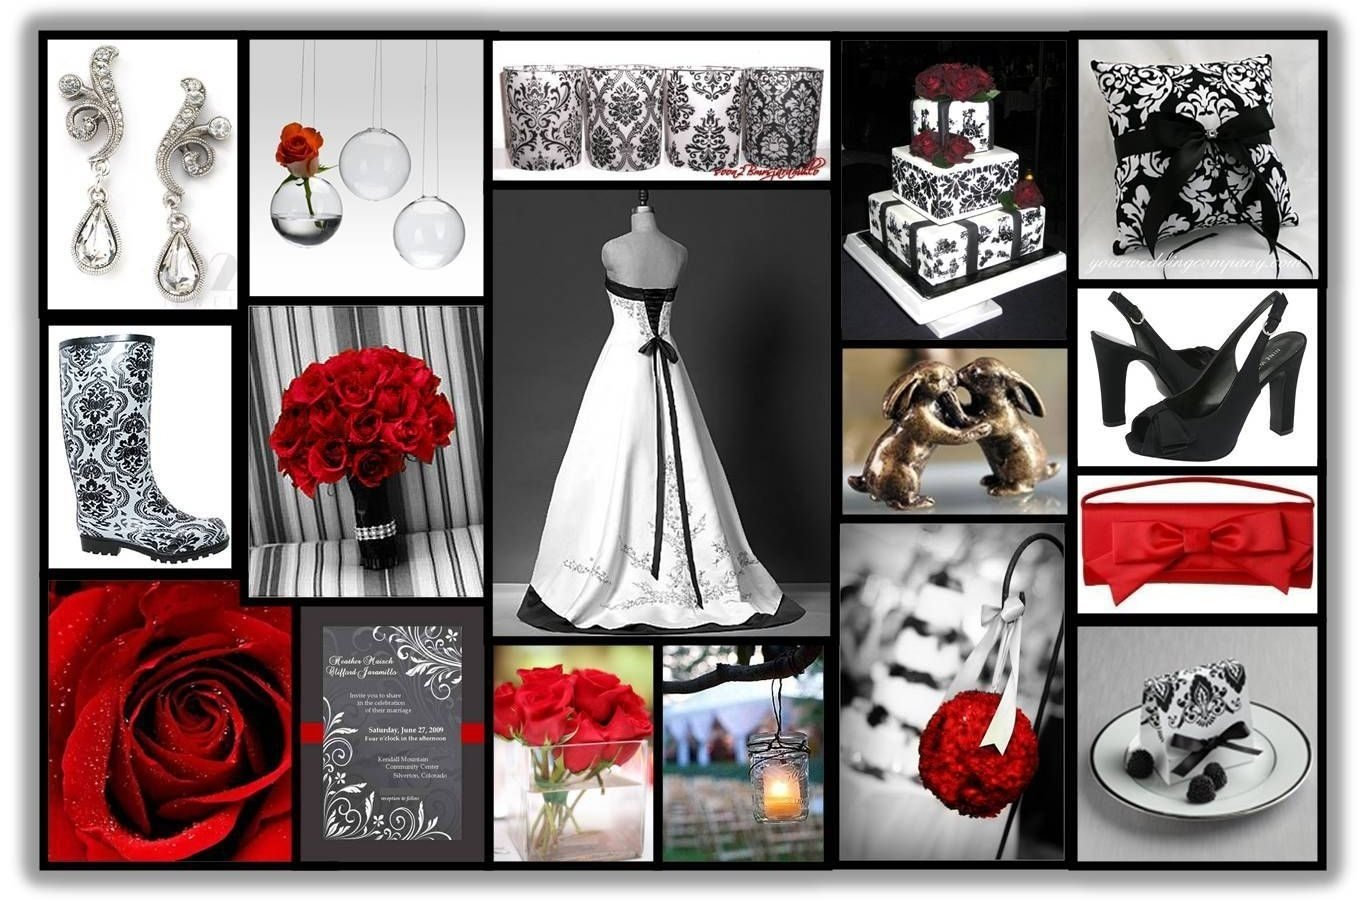 10 Elegant Red Black And White Wedding Reception Ideas red black white wedding ideas and centerpieces party decoration 1 2020